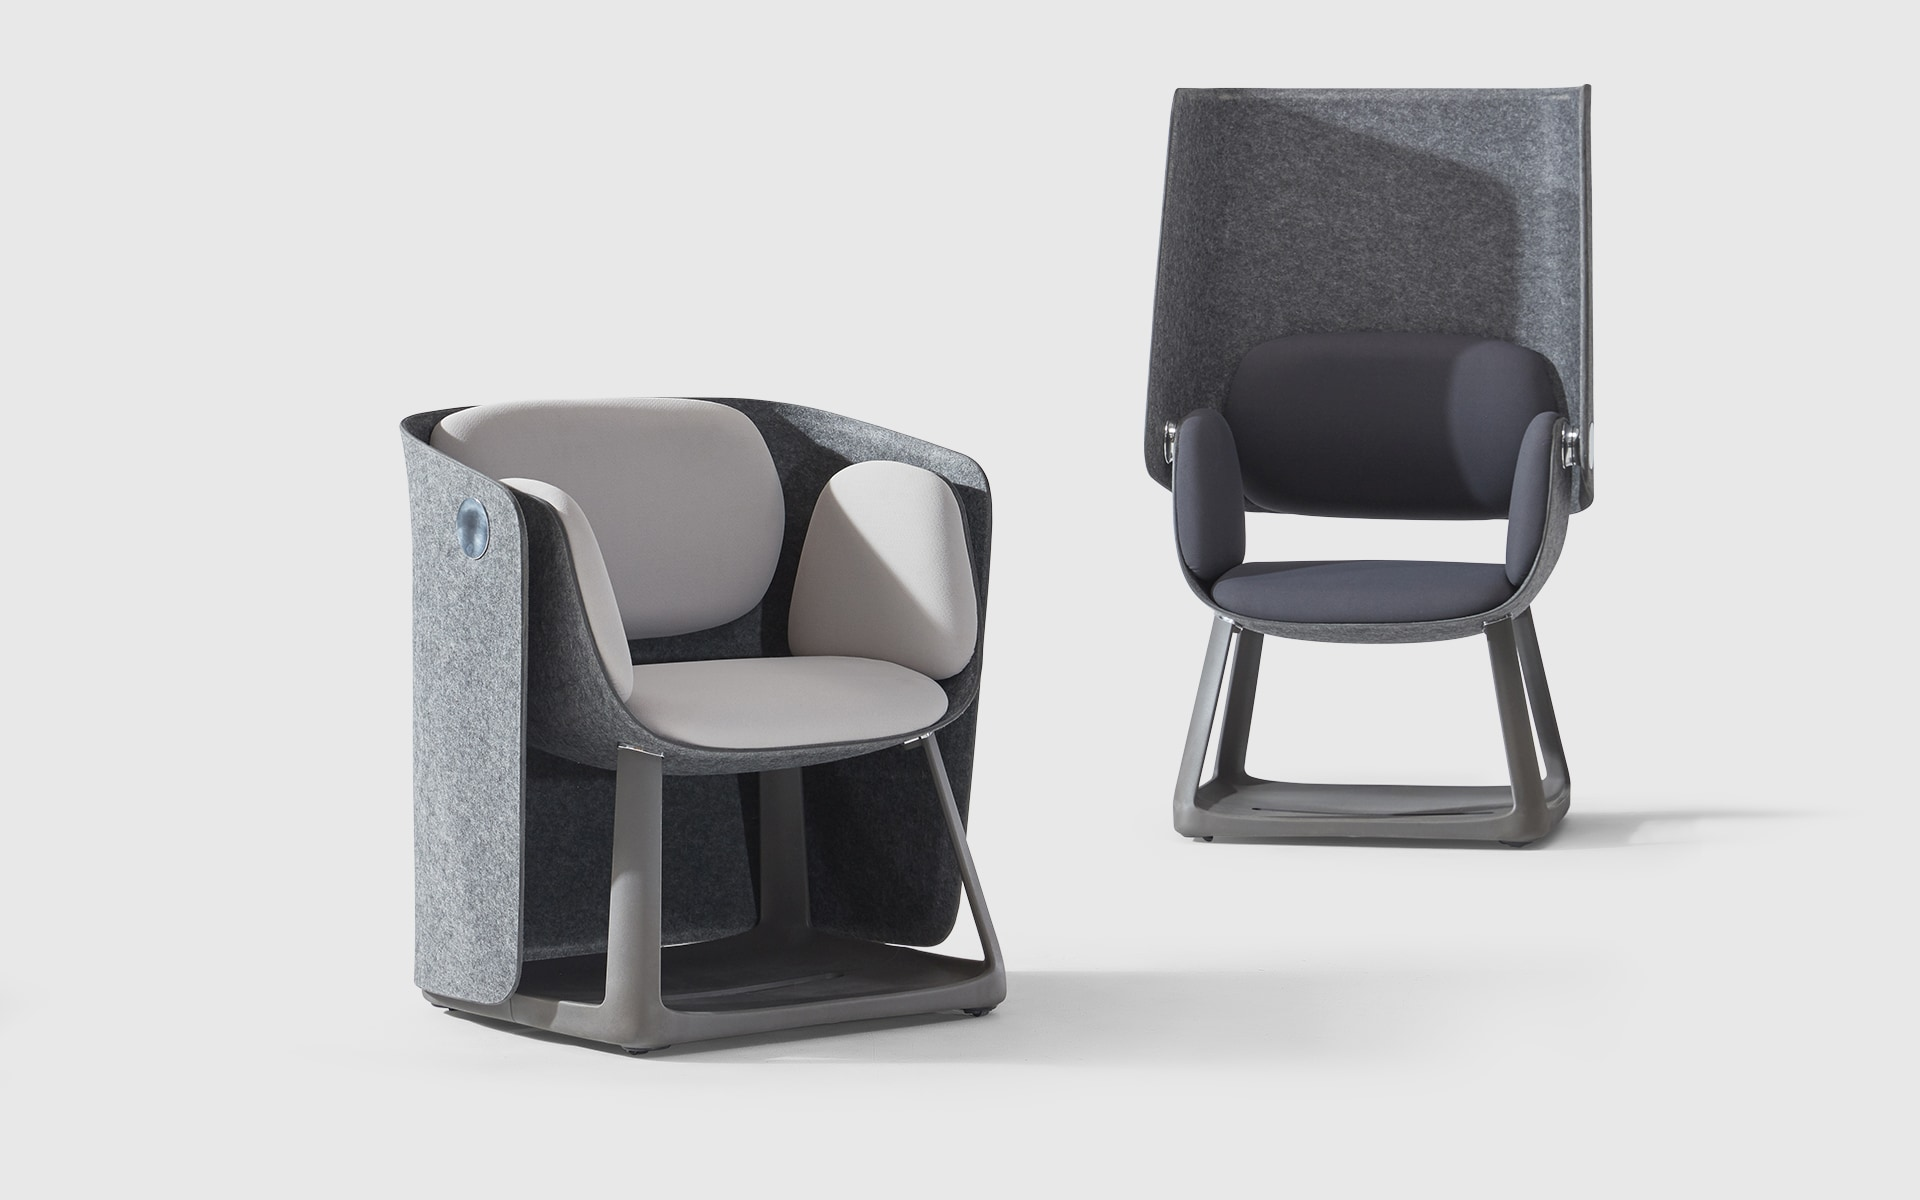 Two Sunon UF Office Chairs by ITO Design with their folding screen folded up and down